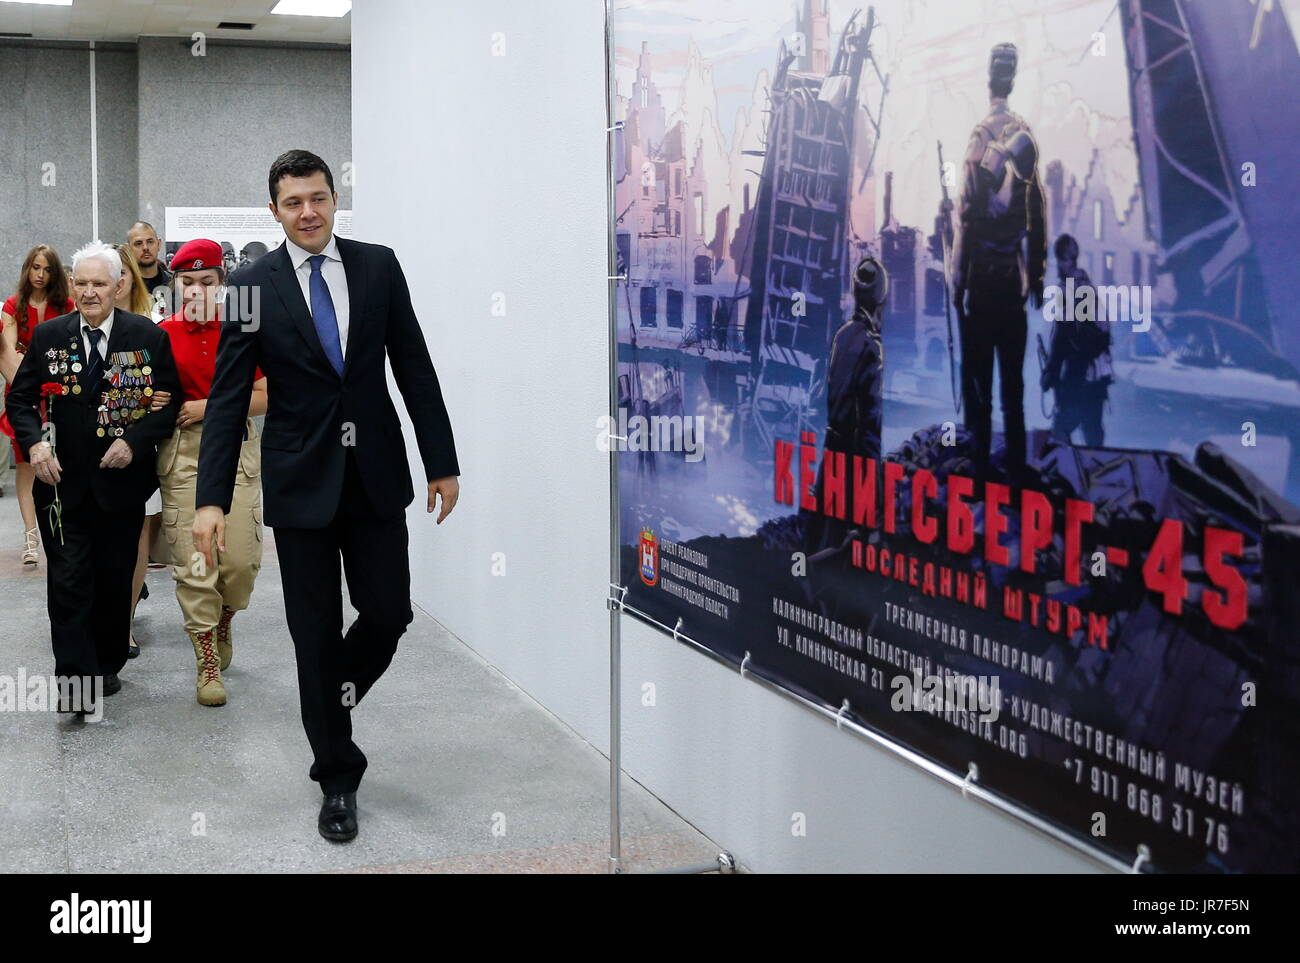 Kaliningrad Region, Russia. 3rd Aug, 2017. War veteran Ivan Tikhonov (L) who took part in the final assault on Konigsberg in 1945, and the acting governor of Kaliningrad Region, Anton Alikhanov (front), visit a 3-dimensional panoramic exhibition titled 'Konigsberg 1945: the Final Assault' at the Kaliningrad Region Museum of History and Arts; the 360-degree display, which depicts the April 1945 assault by the Red Army on the city of Konigsberg in WWII, is an artwork by the Nevsky Batalist team led by Dmitry Poshtarenko. Credit: Vitaly Nevar/TASS/Alamy Live News - Stock Image